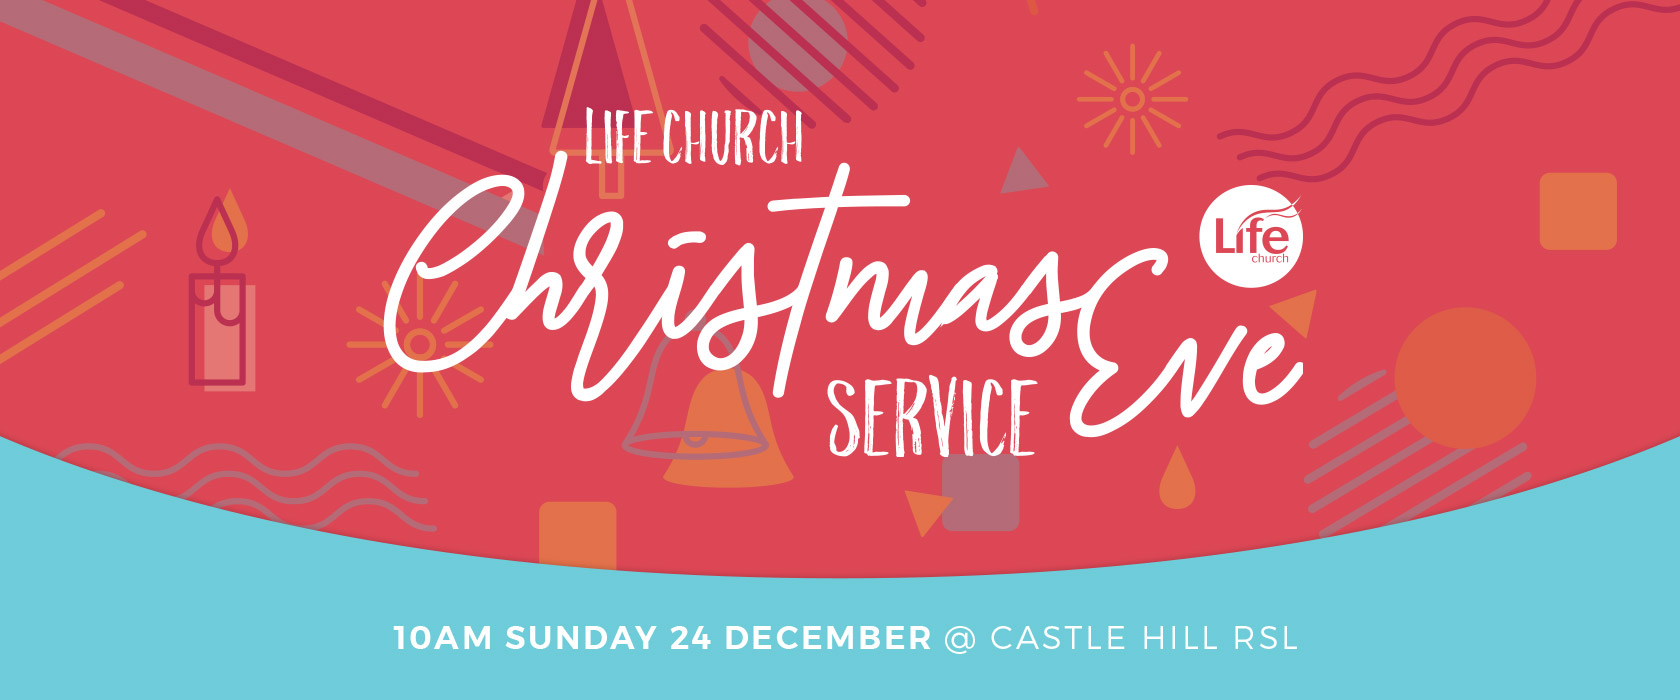 Life Church Christmas Eve Service